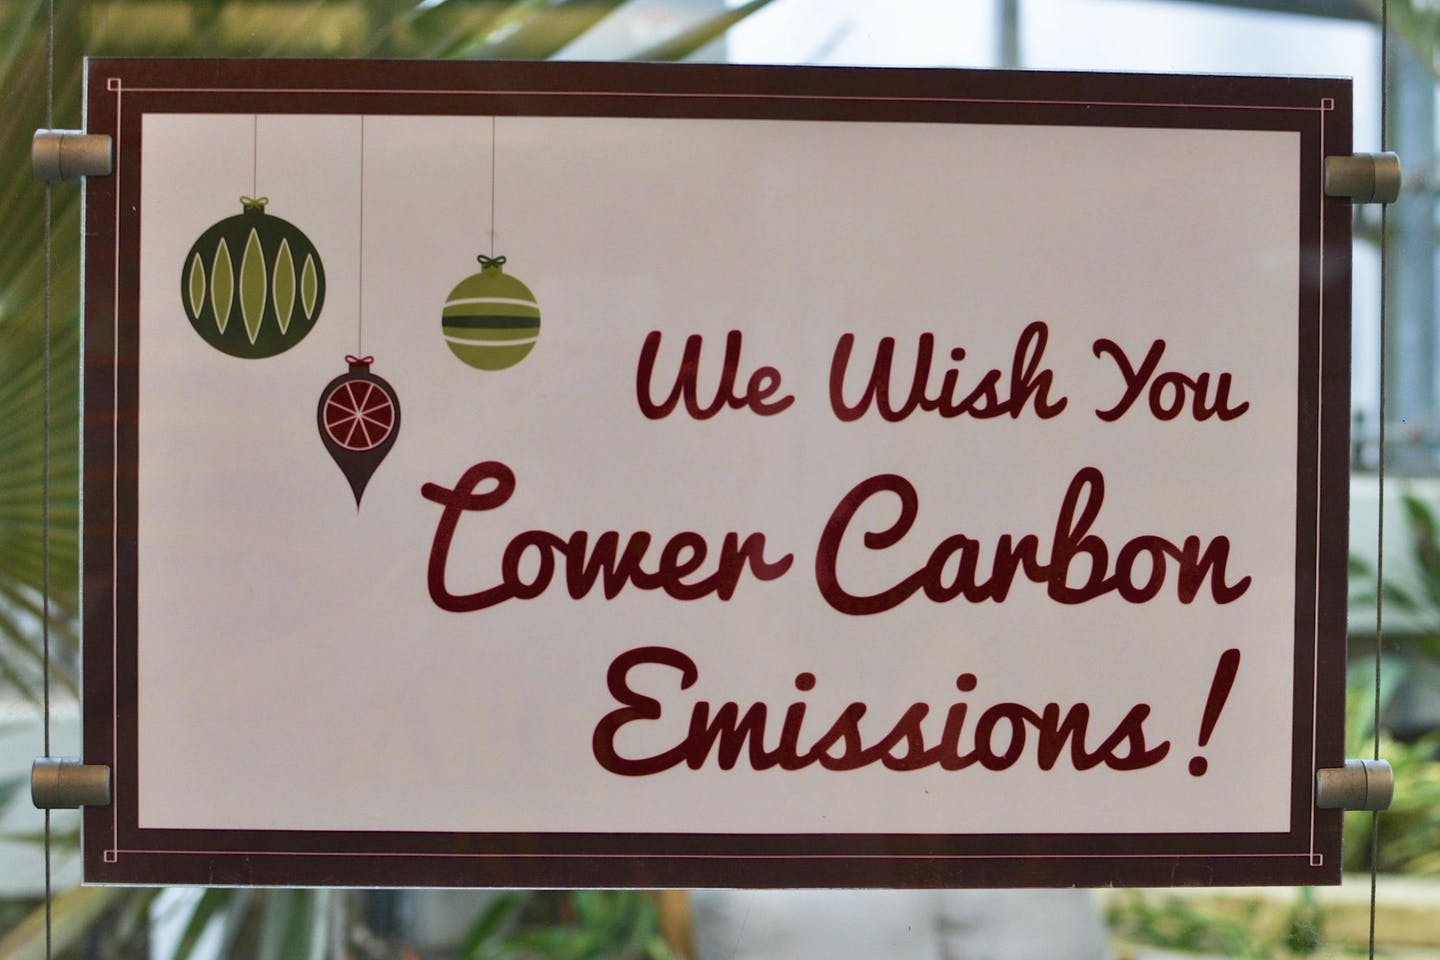 We wish you lower carbon emissions